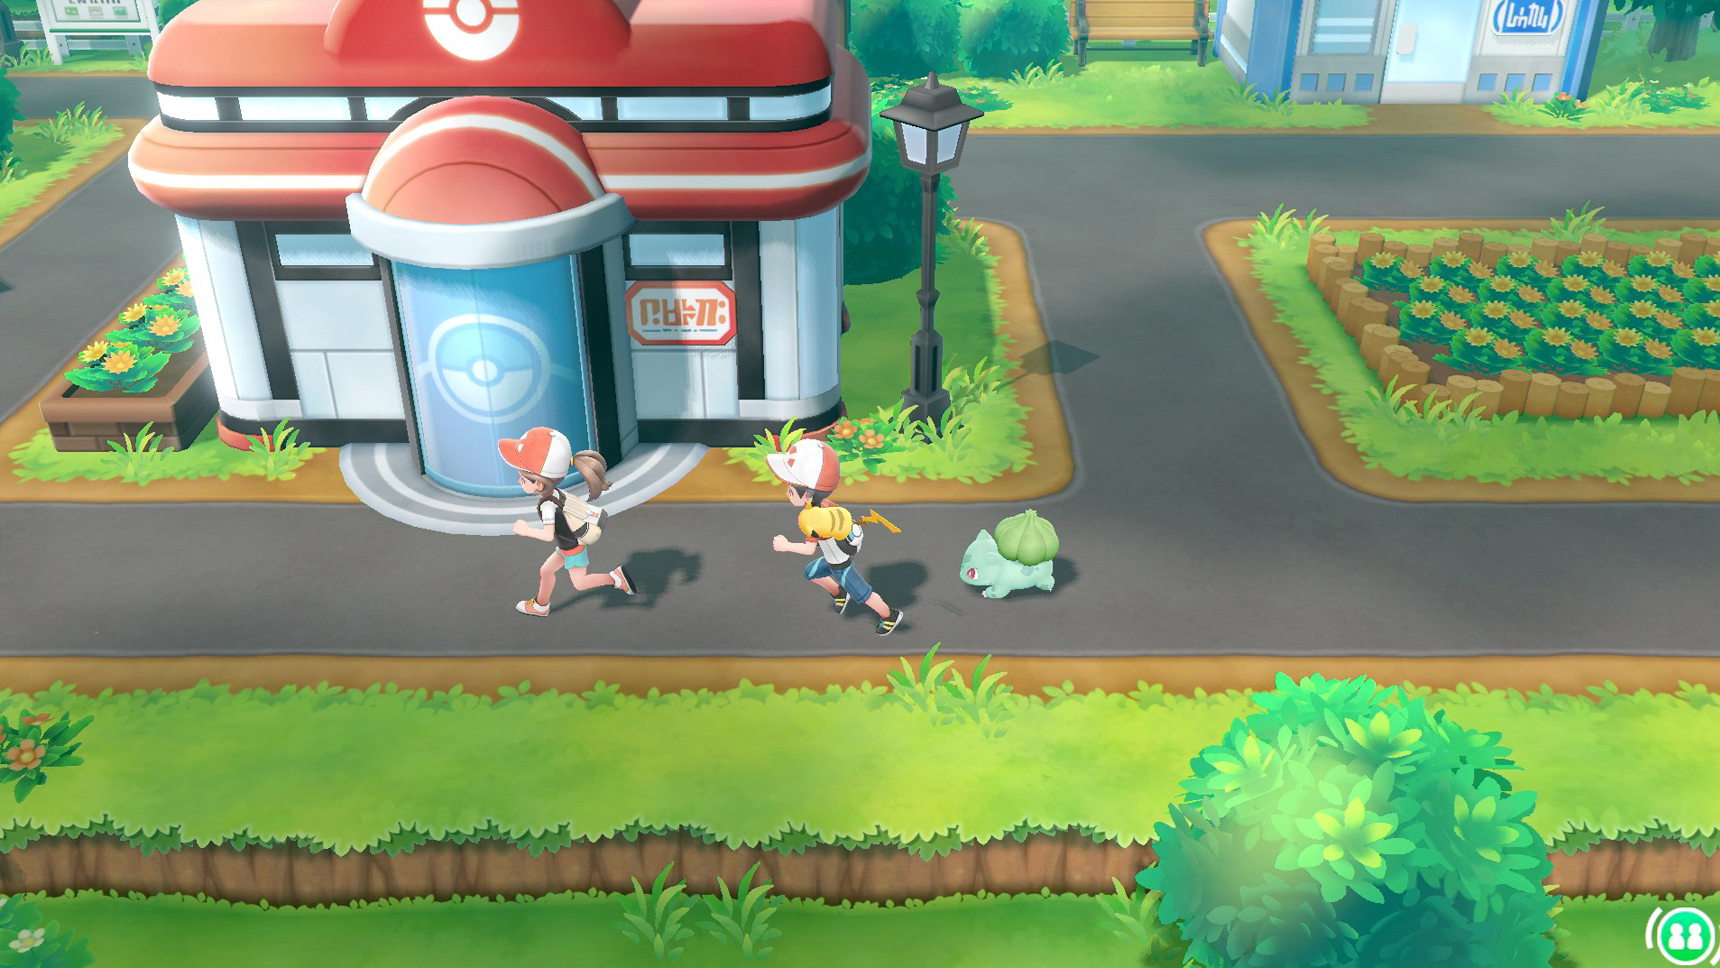 Buy Pokemon Let's Go Pikachu and Eevee at Monster Shop for Nintendo Switch